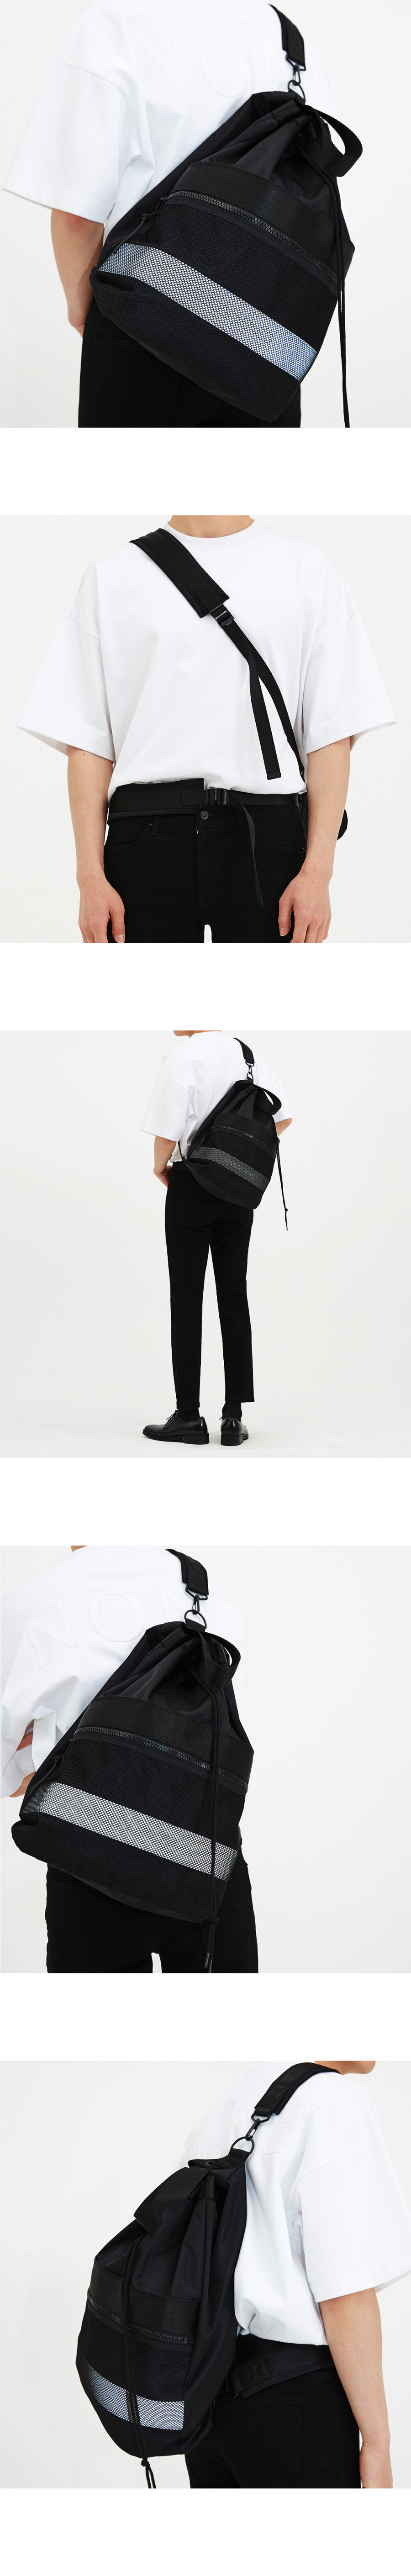 메종미네드(MAISON MINED) TWO-WAY SCOTCH BAGPACK